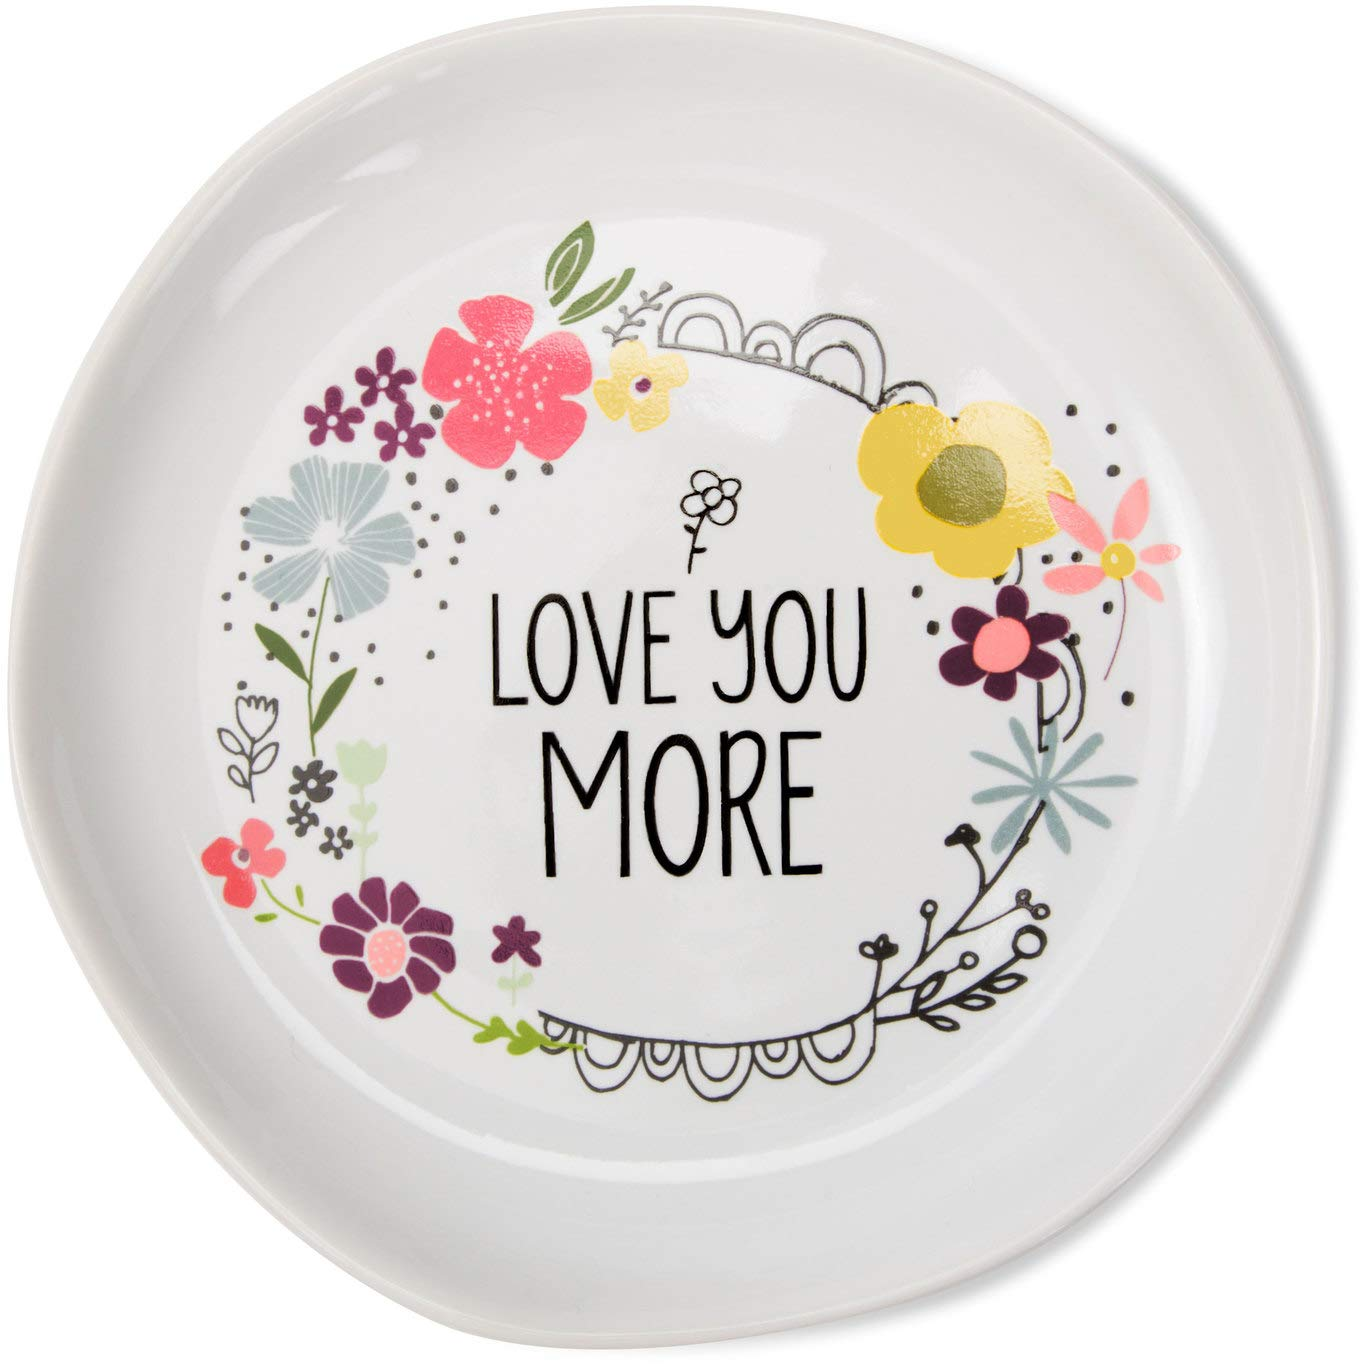 Love You More by Amylee Weeks Jewelry Dish Love Gift Packaging